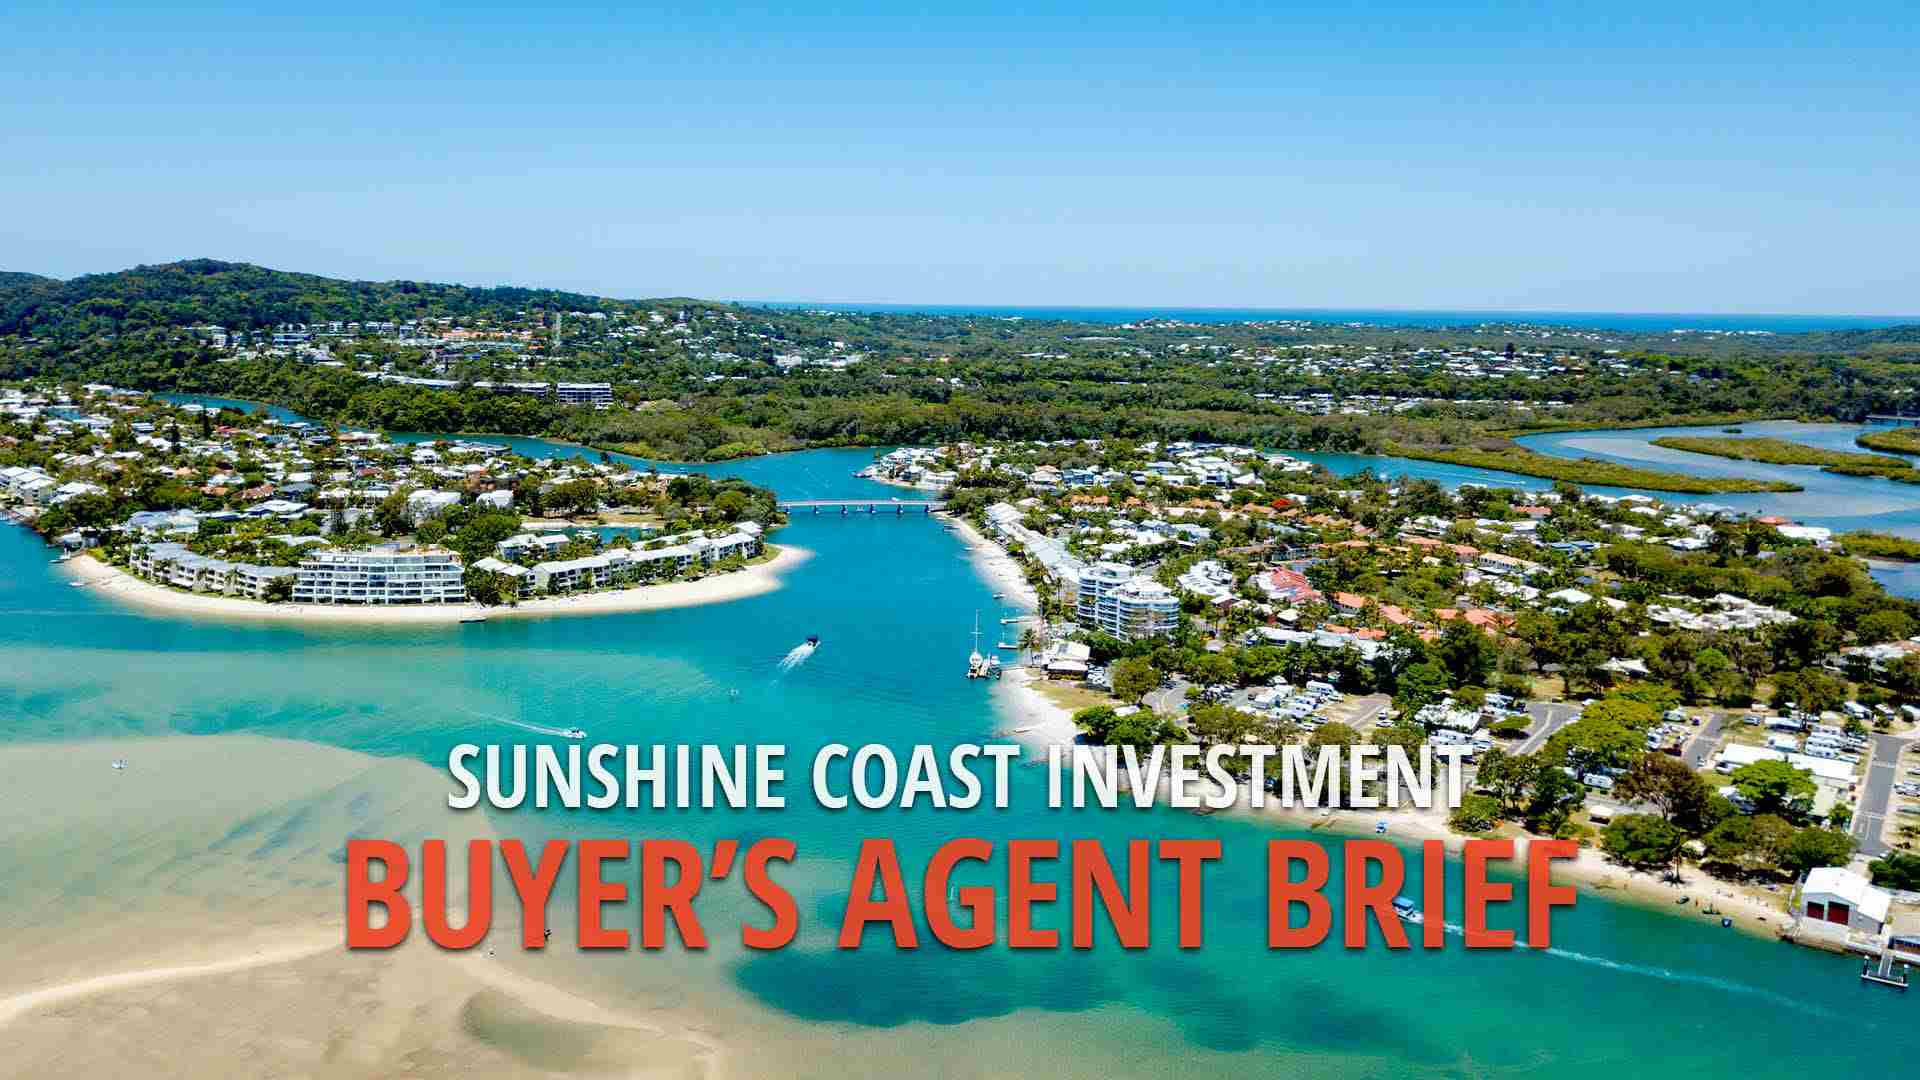 Buyer's Agent Brief - Sunshine Coast investment